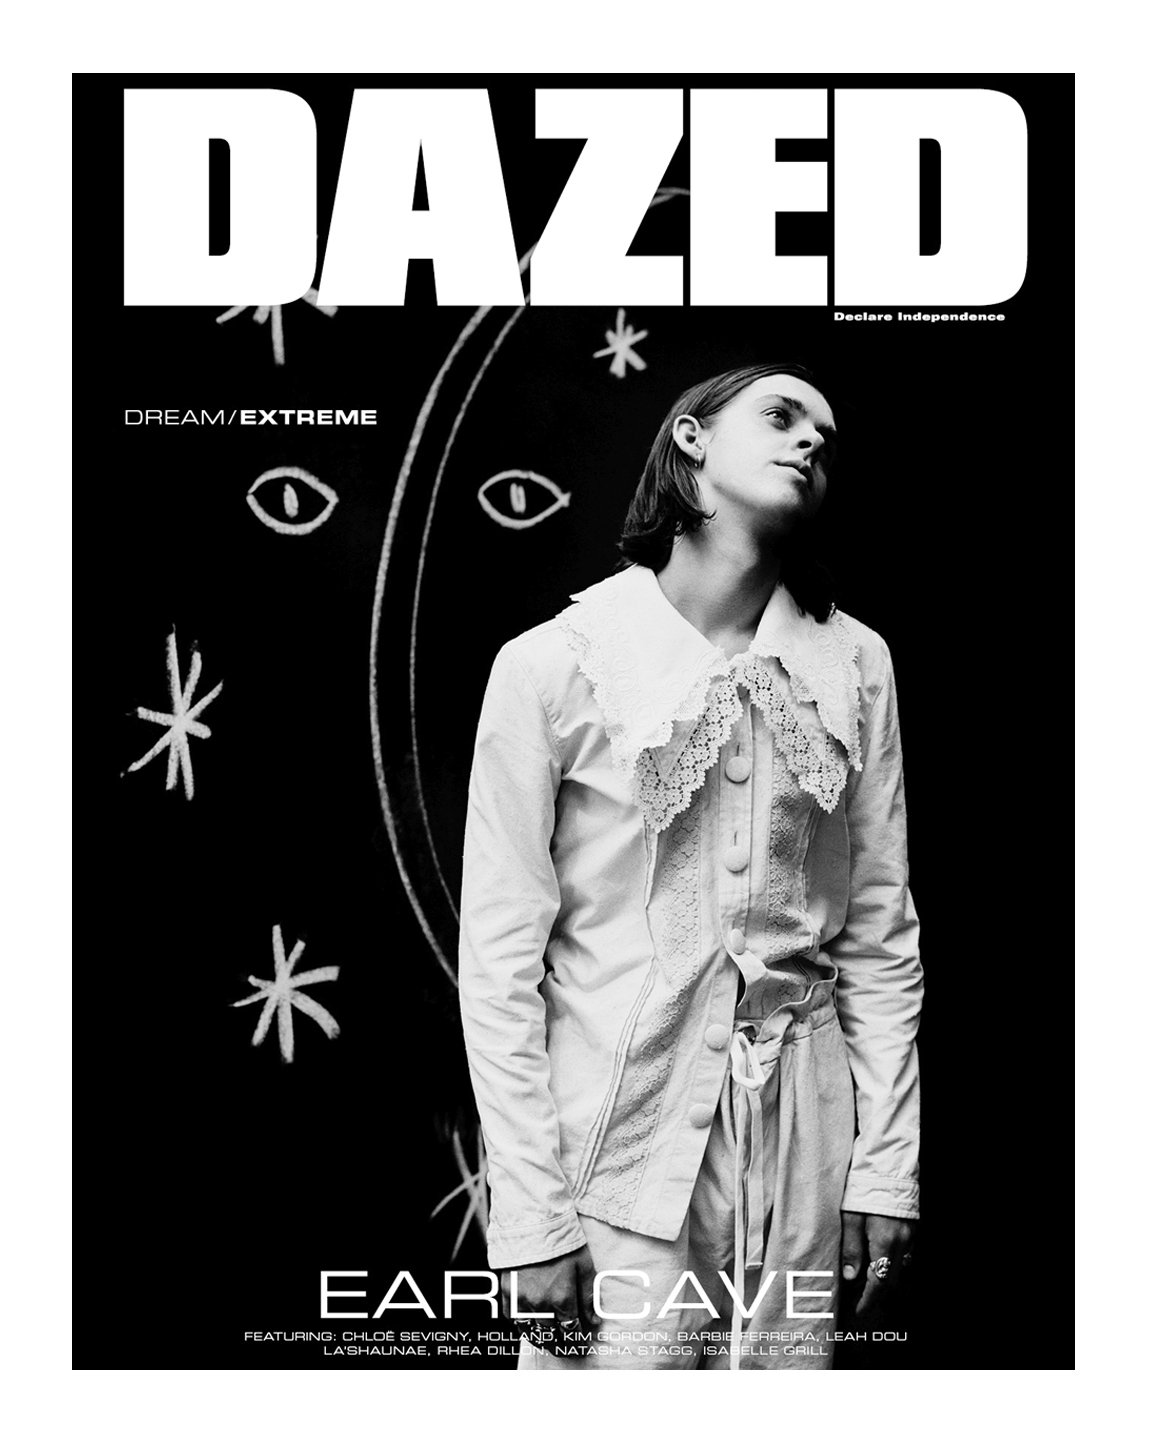 Seen on @Dazed's latest cover, #EarlCave wears #GucciFW19 by #AlessandroMichele.  #GucciEditorials  Photography by: #JackDavison Styling by: #RobbieSpencer https://t.co/Mm7tg8rdN5